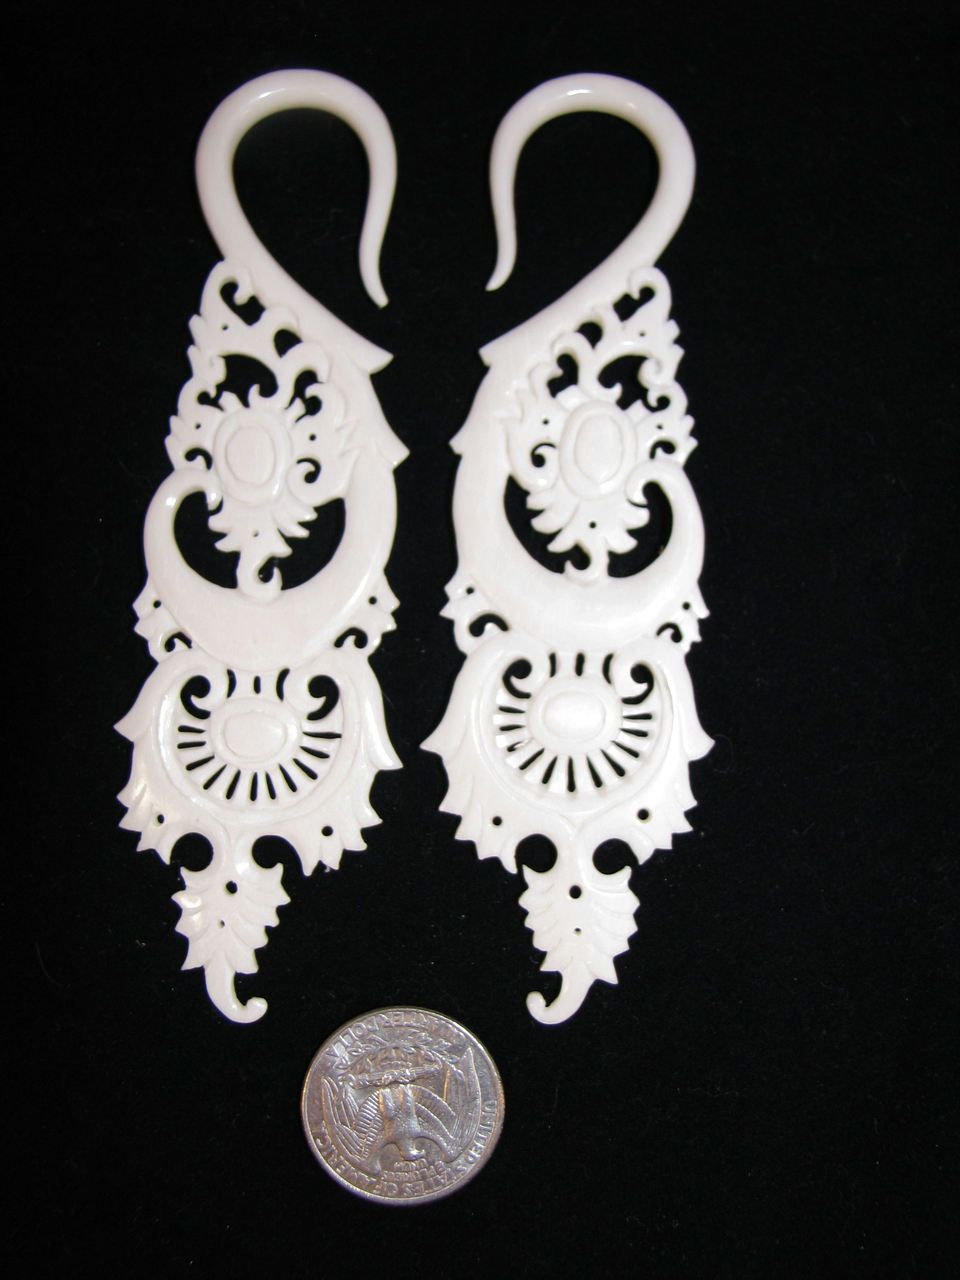 Jaded Detailed Carved Organic Bone Ear Gauges Limited 4g Or 5mm Hanging Plugs Or Spacers Ear Gauges Ear Carving